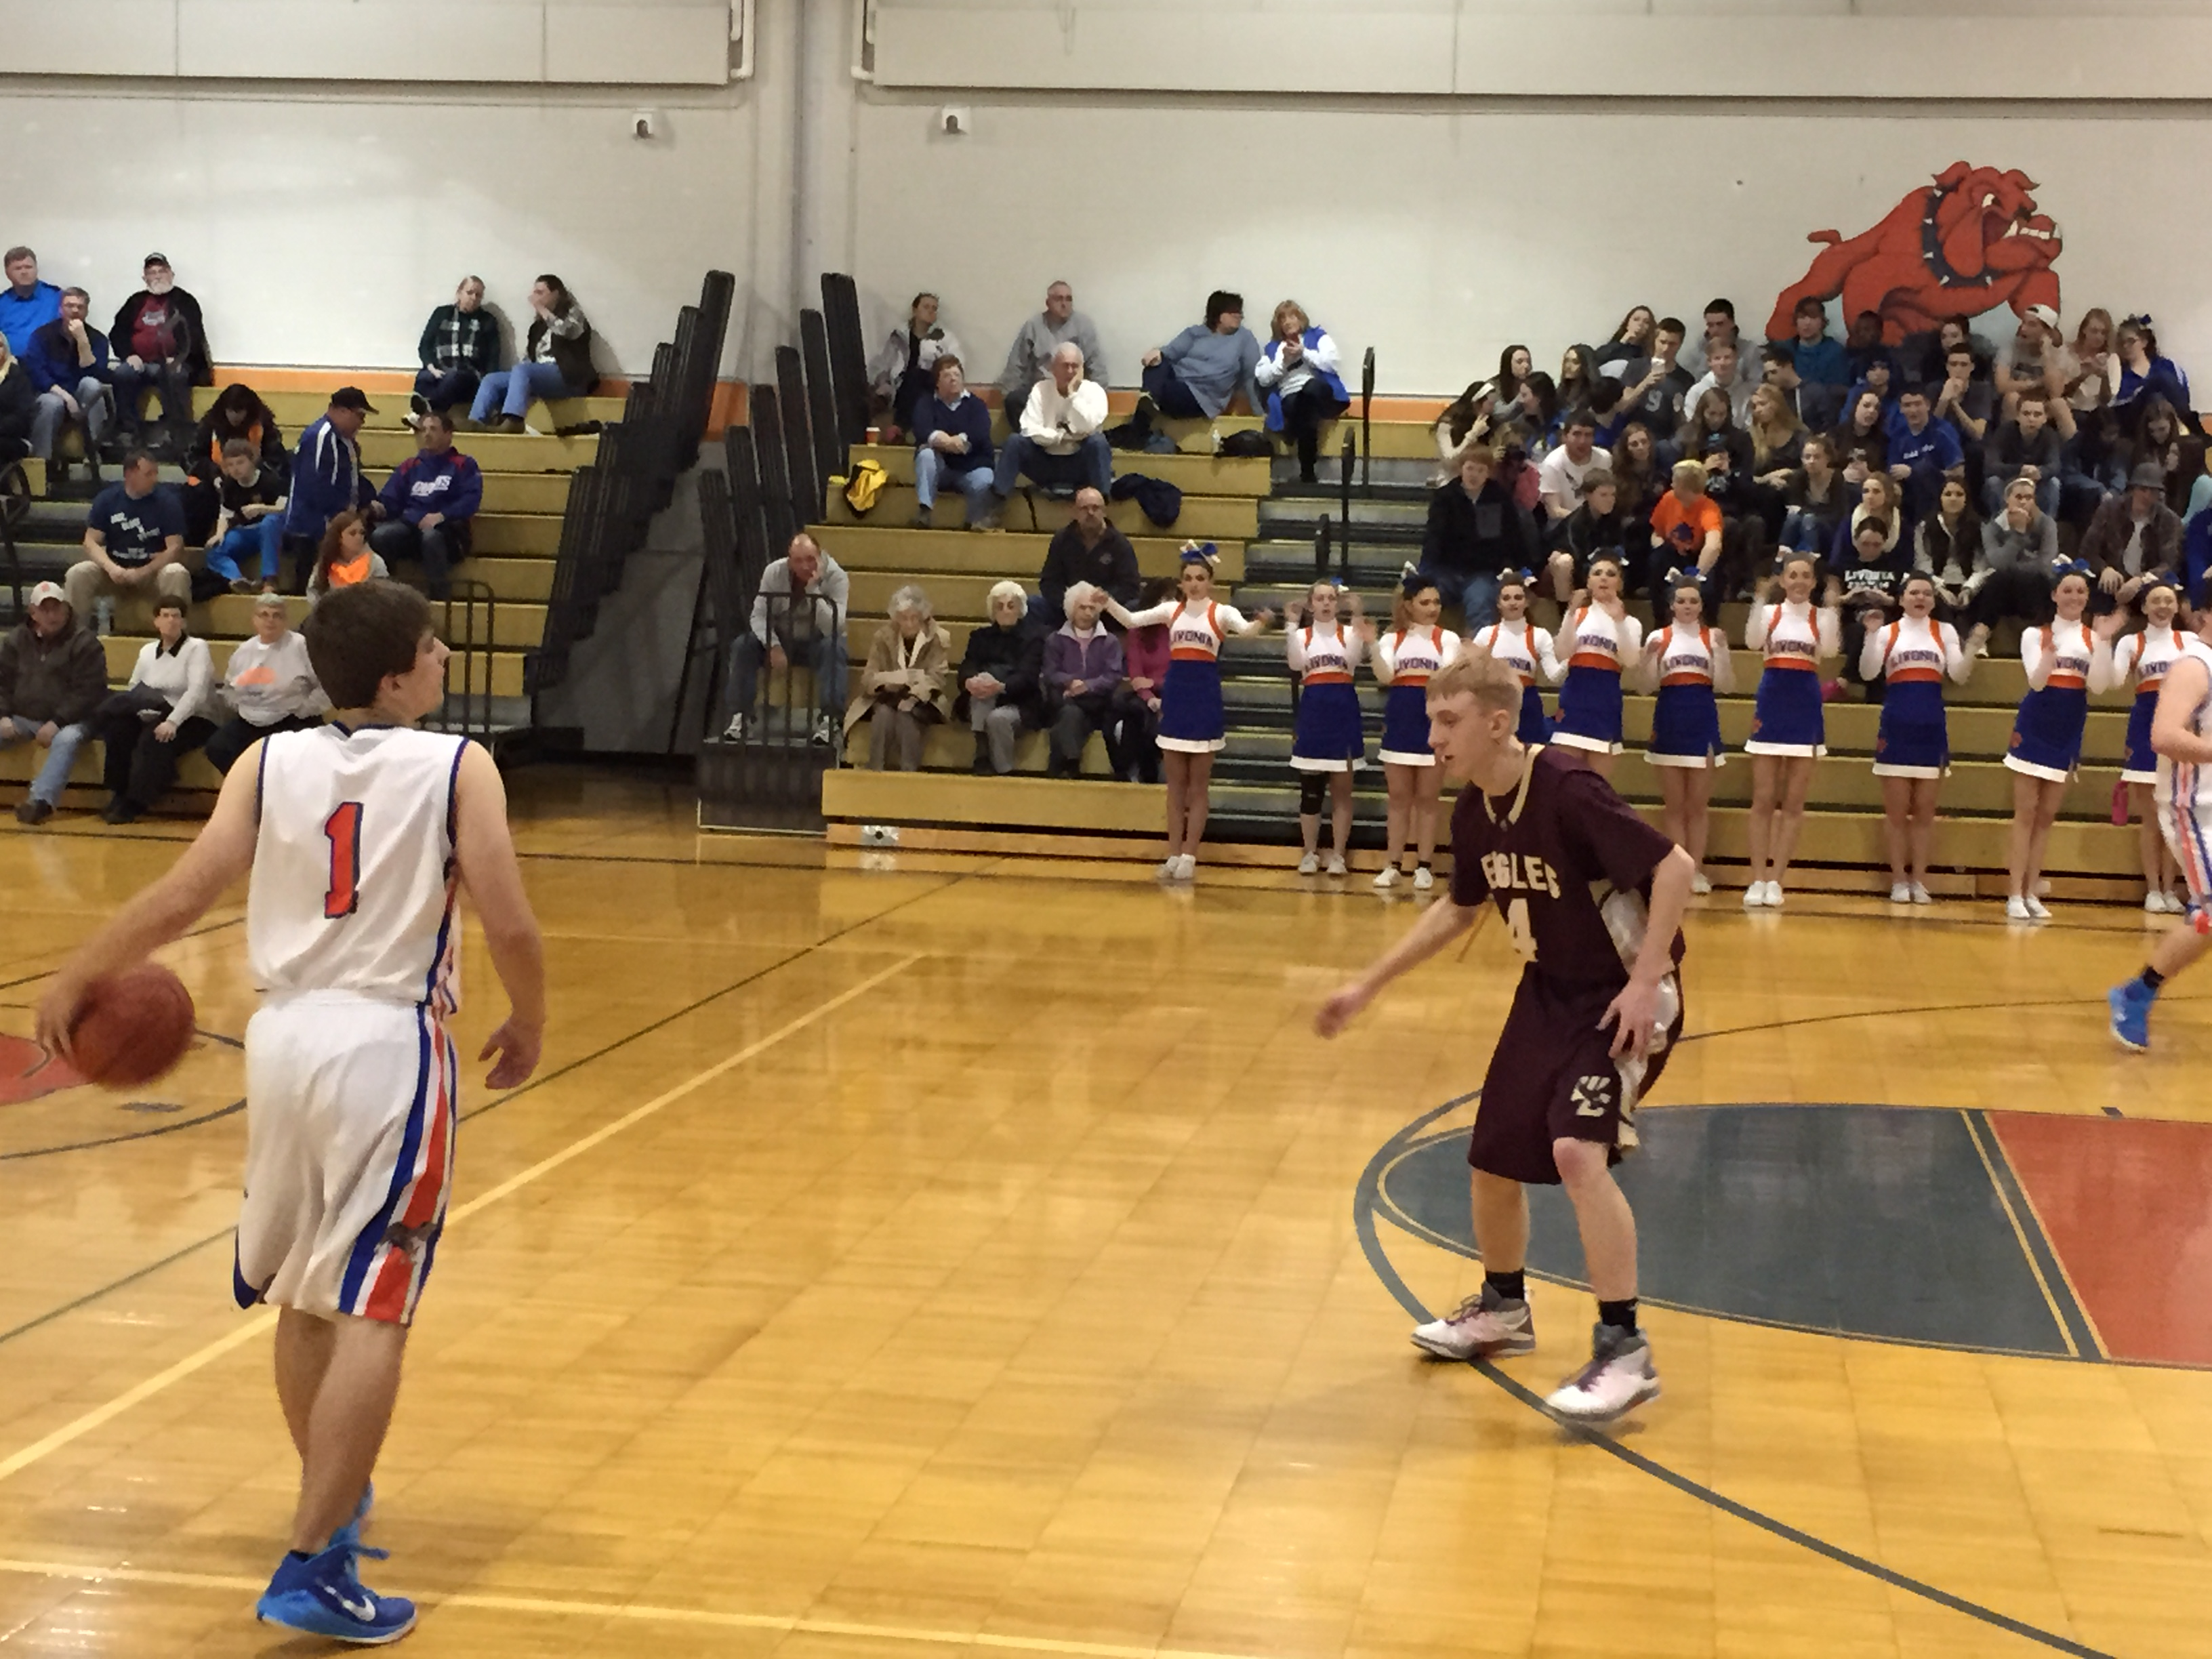 BOY'S BASKETBALL: Livonia Defeats Wayland-Cohocton